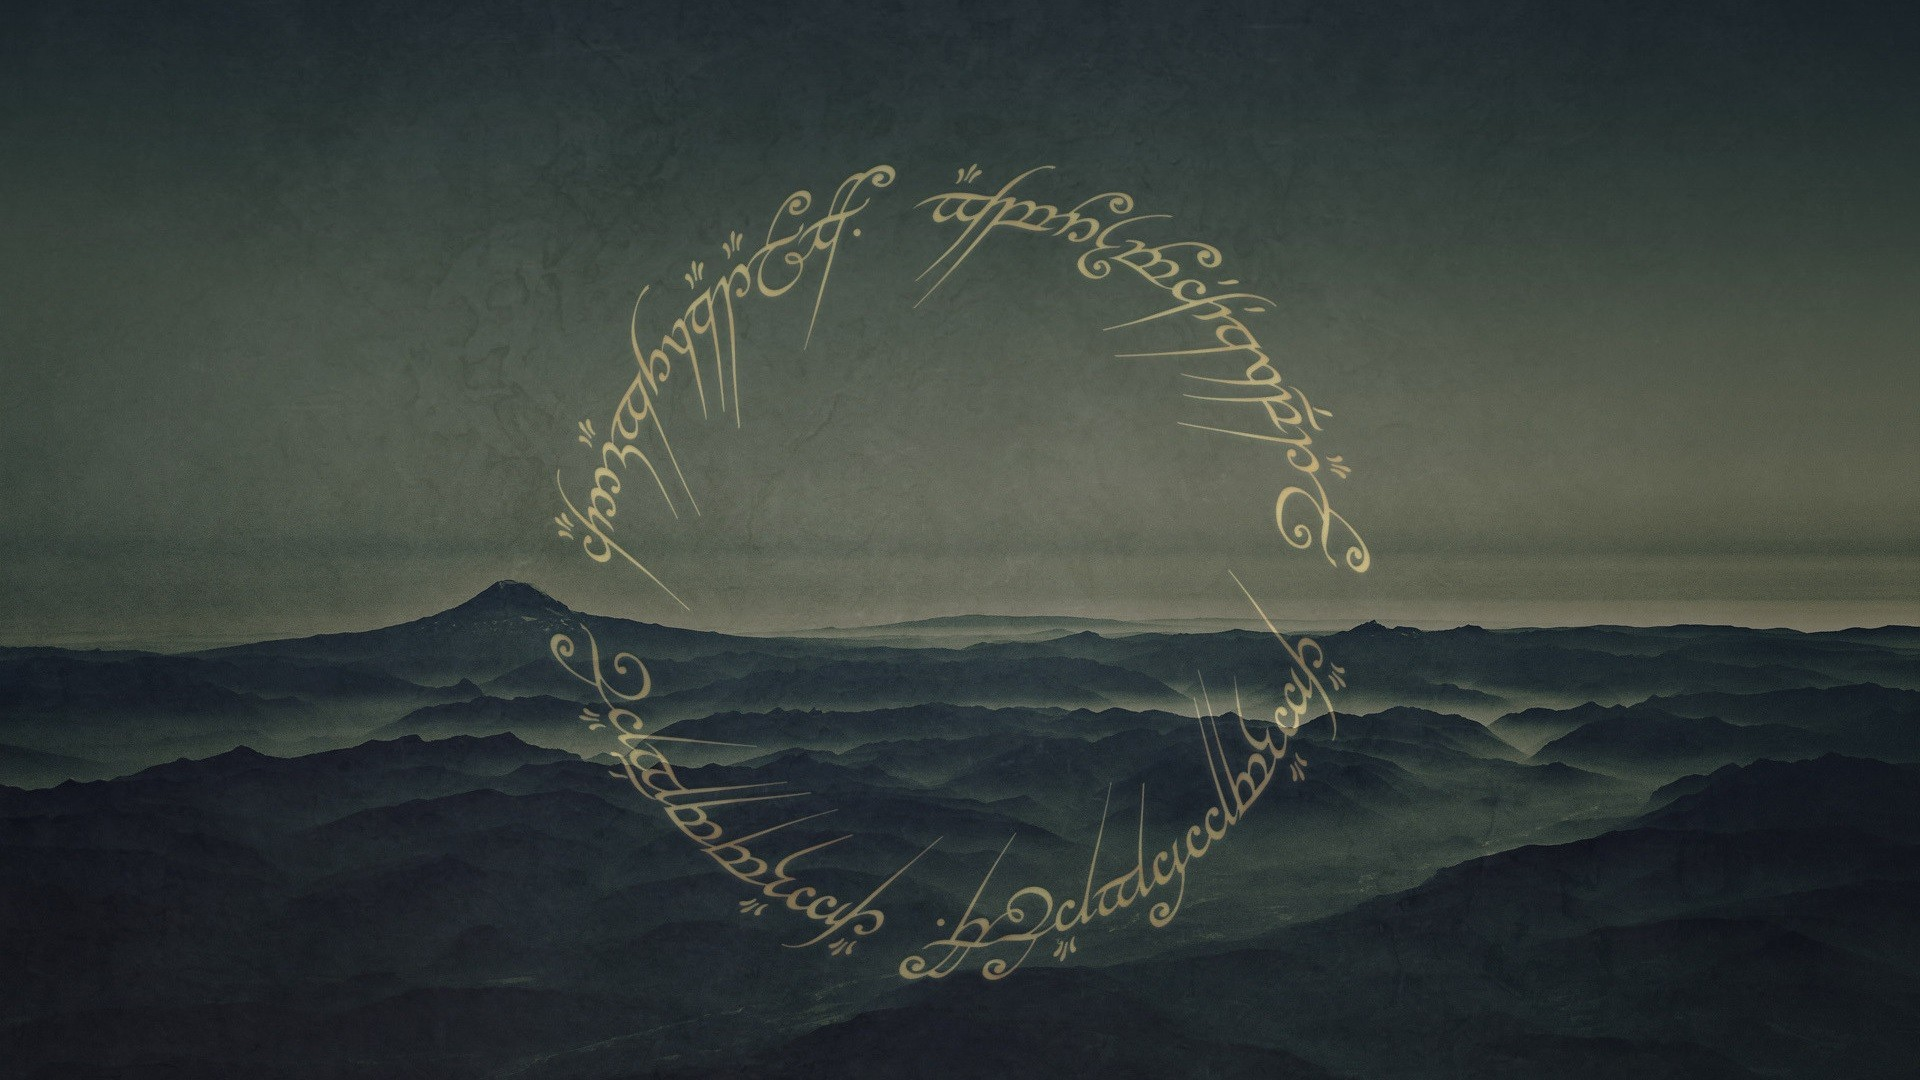 Download Lord of the Rings Wallpapers : Android Stock Wallpapers